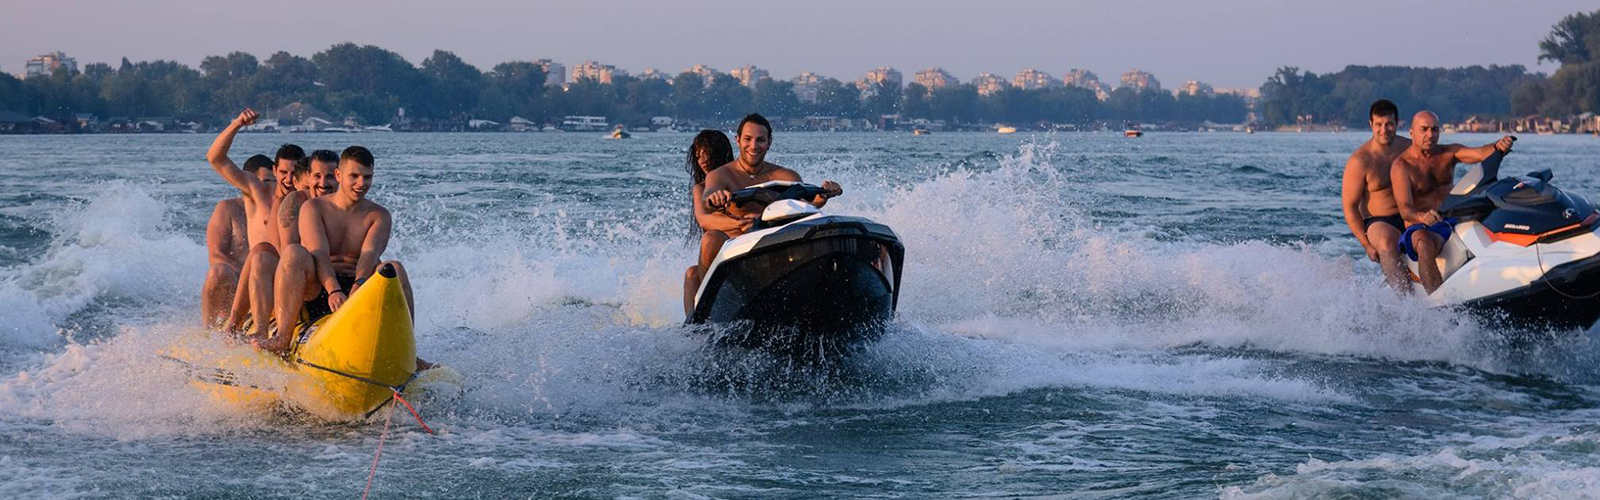 Concierge Belgrade | Water sports